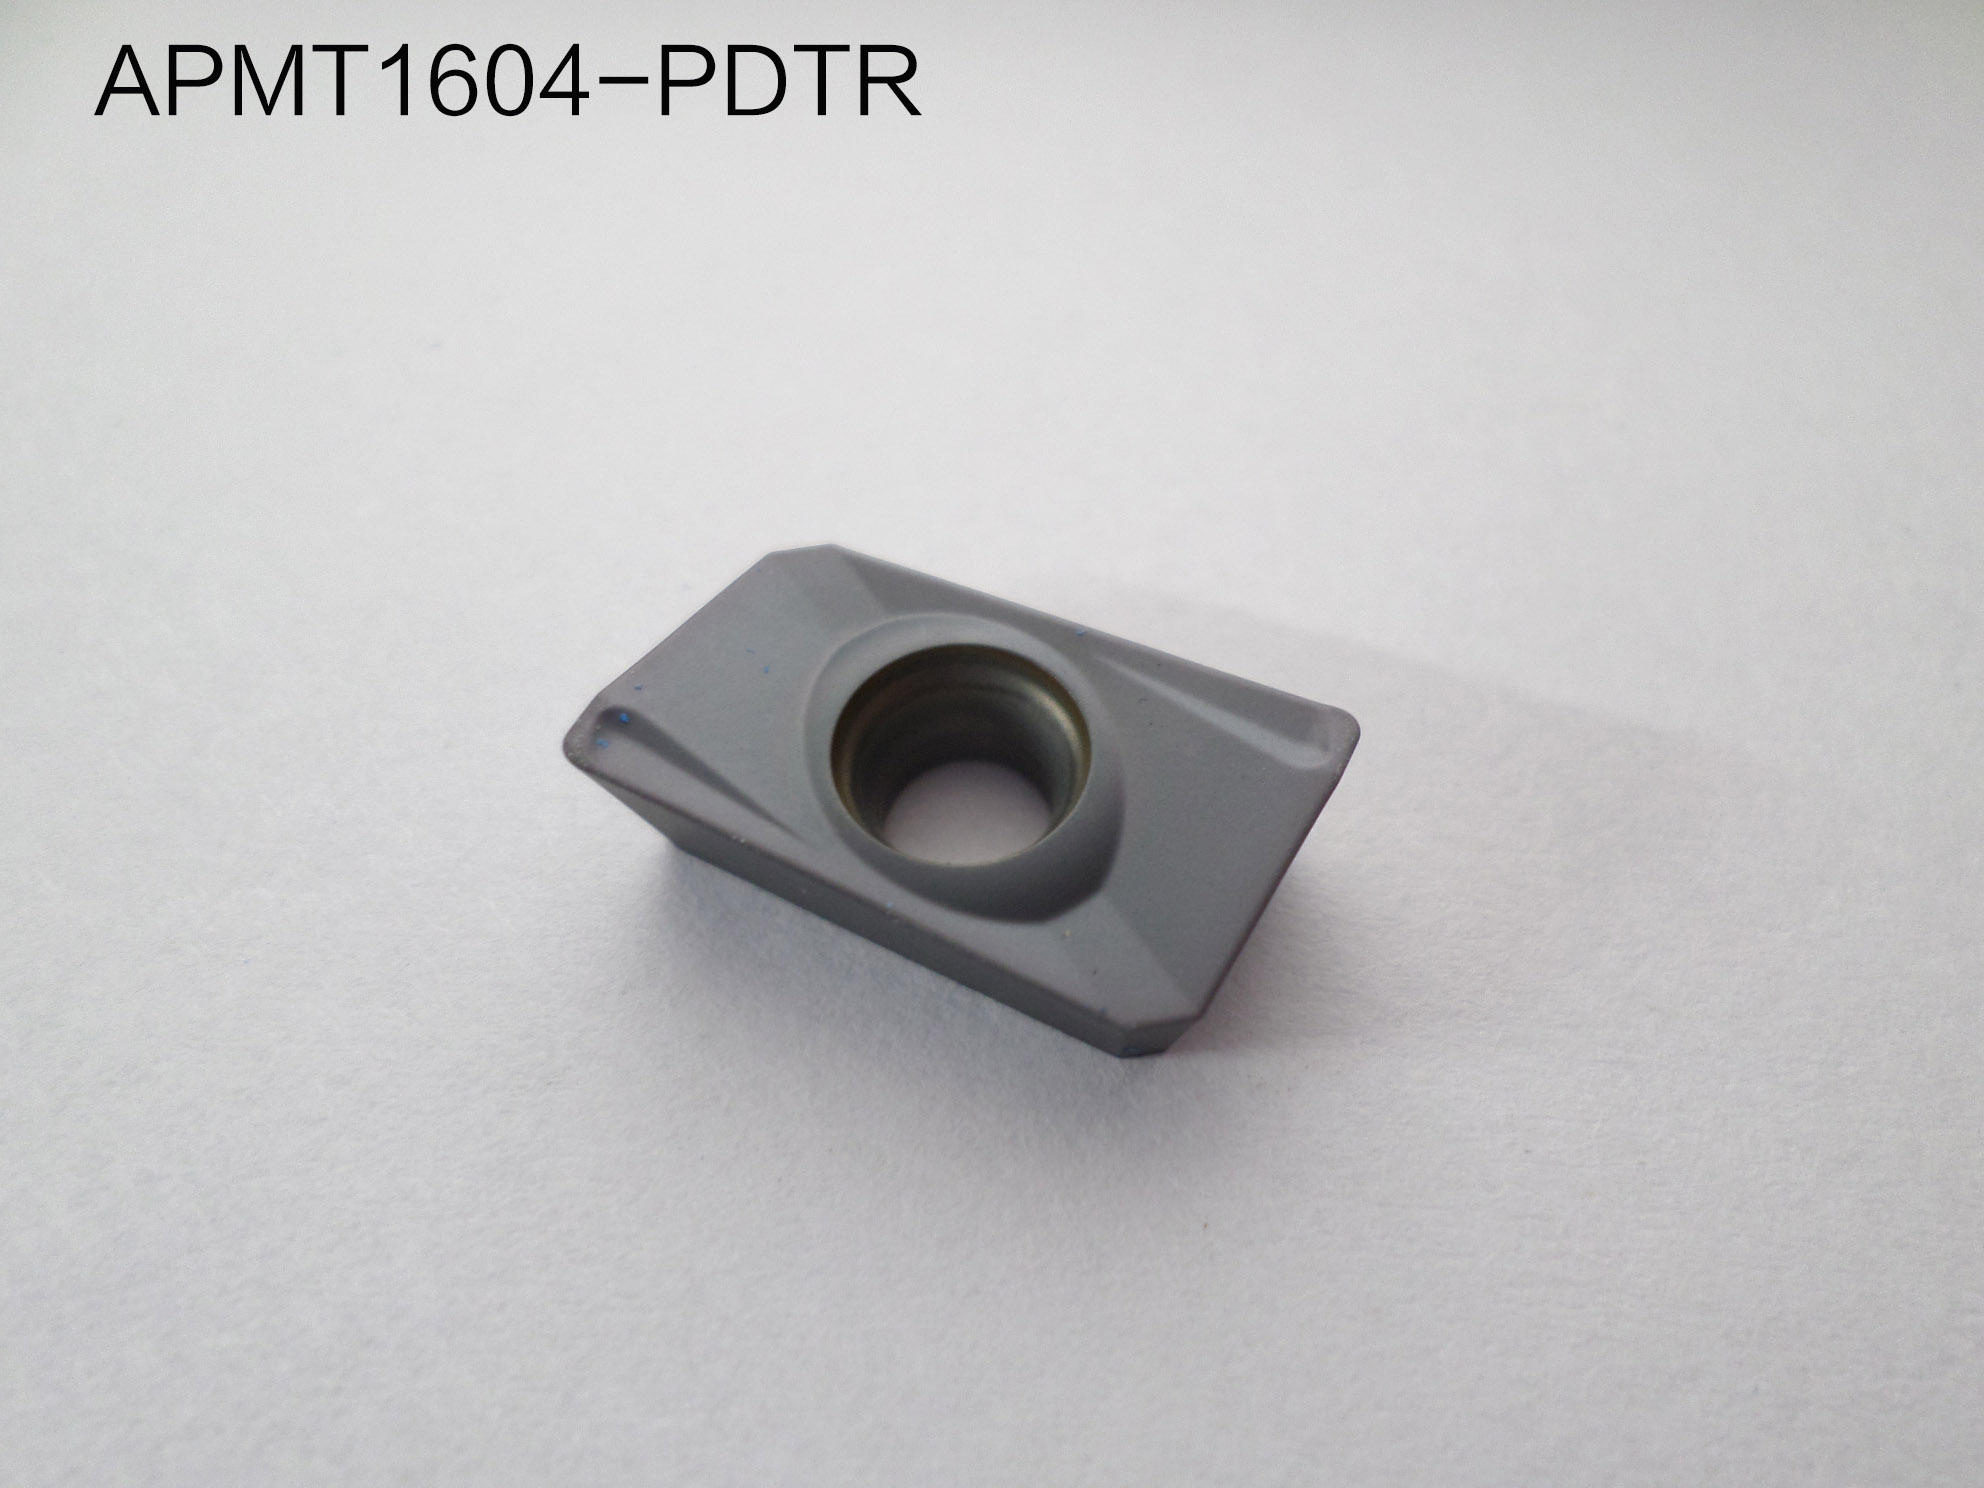 APKT 1604 PDTR Substitutes Replacements China